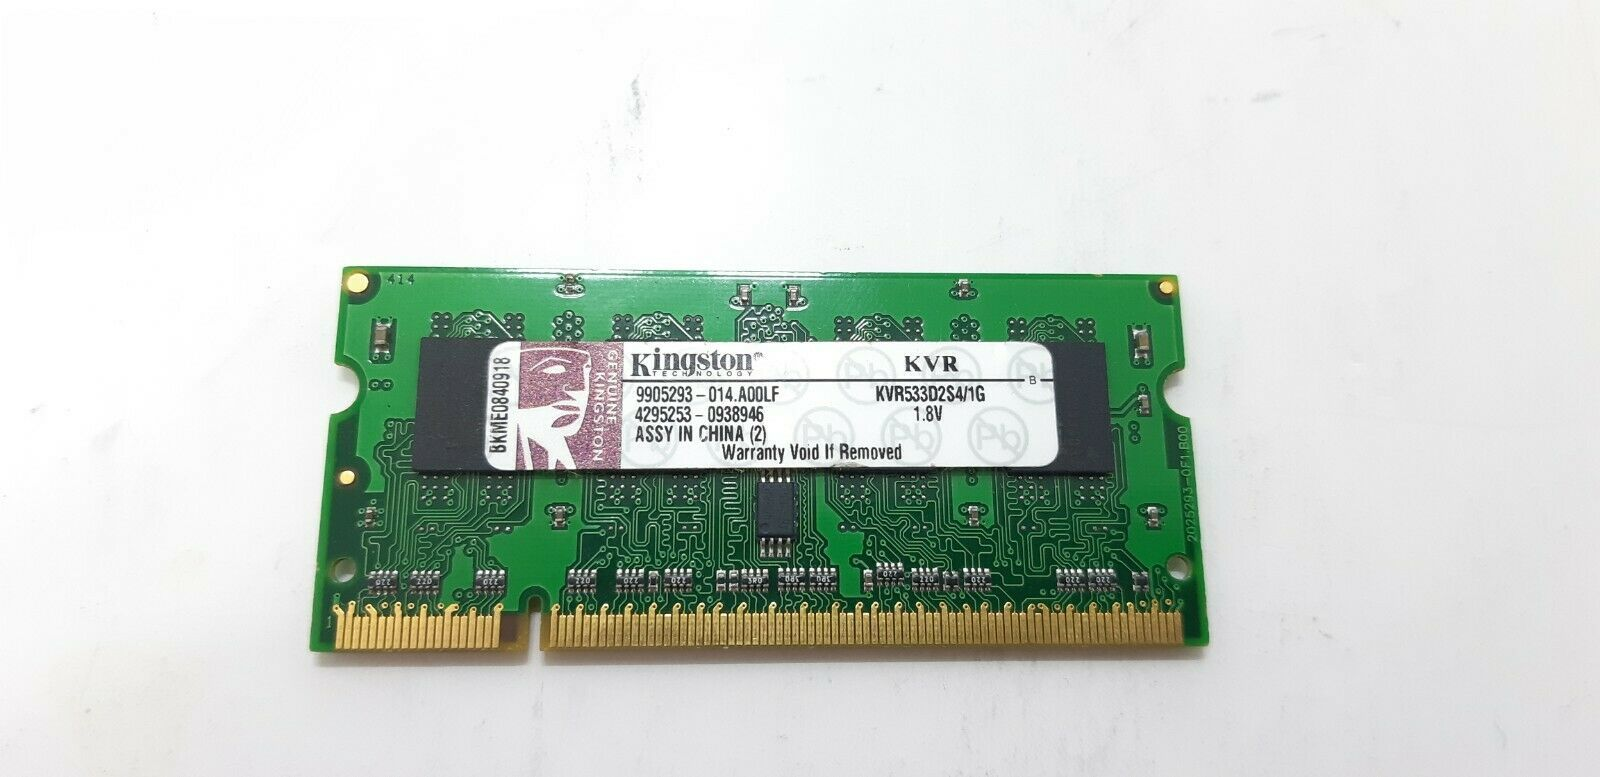 Primary image for Kingston ValueRAM 1GB SO-DIMM PC2-4200 533MHz DDR2 Memory (KVR533D2S4/1G)